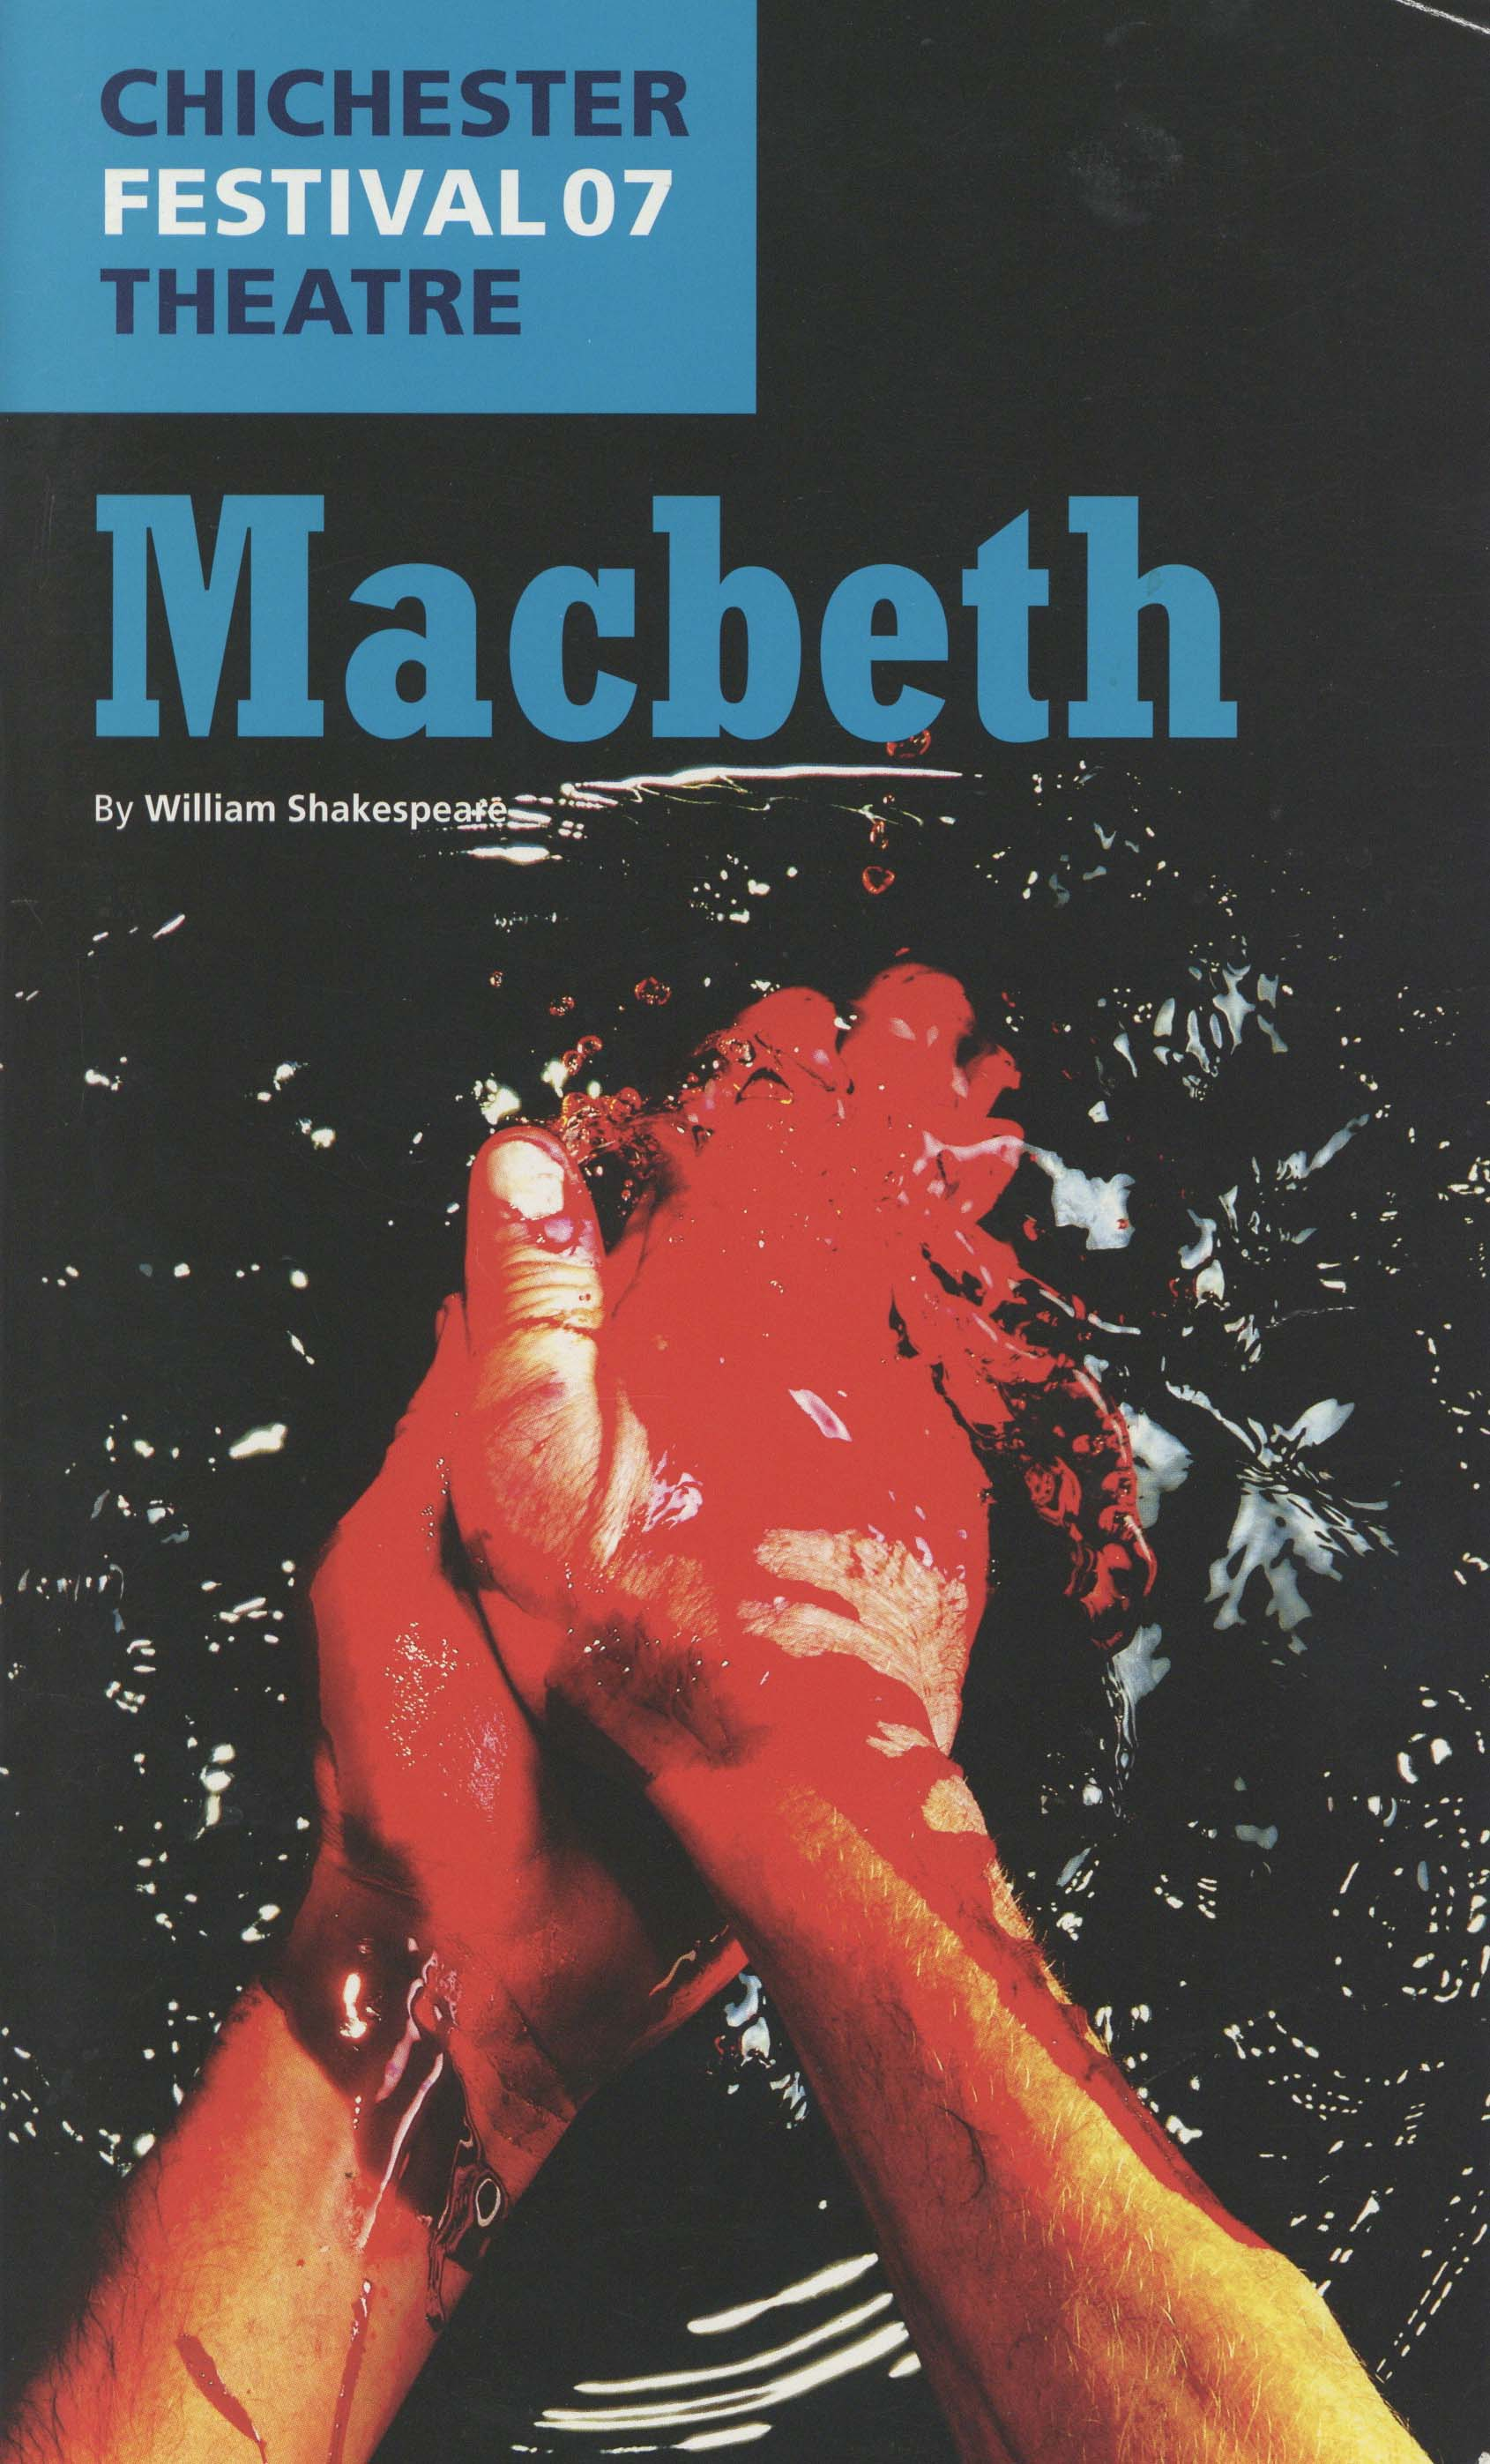 Programme - Macbeth - 2007 - 1 of 44